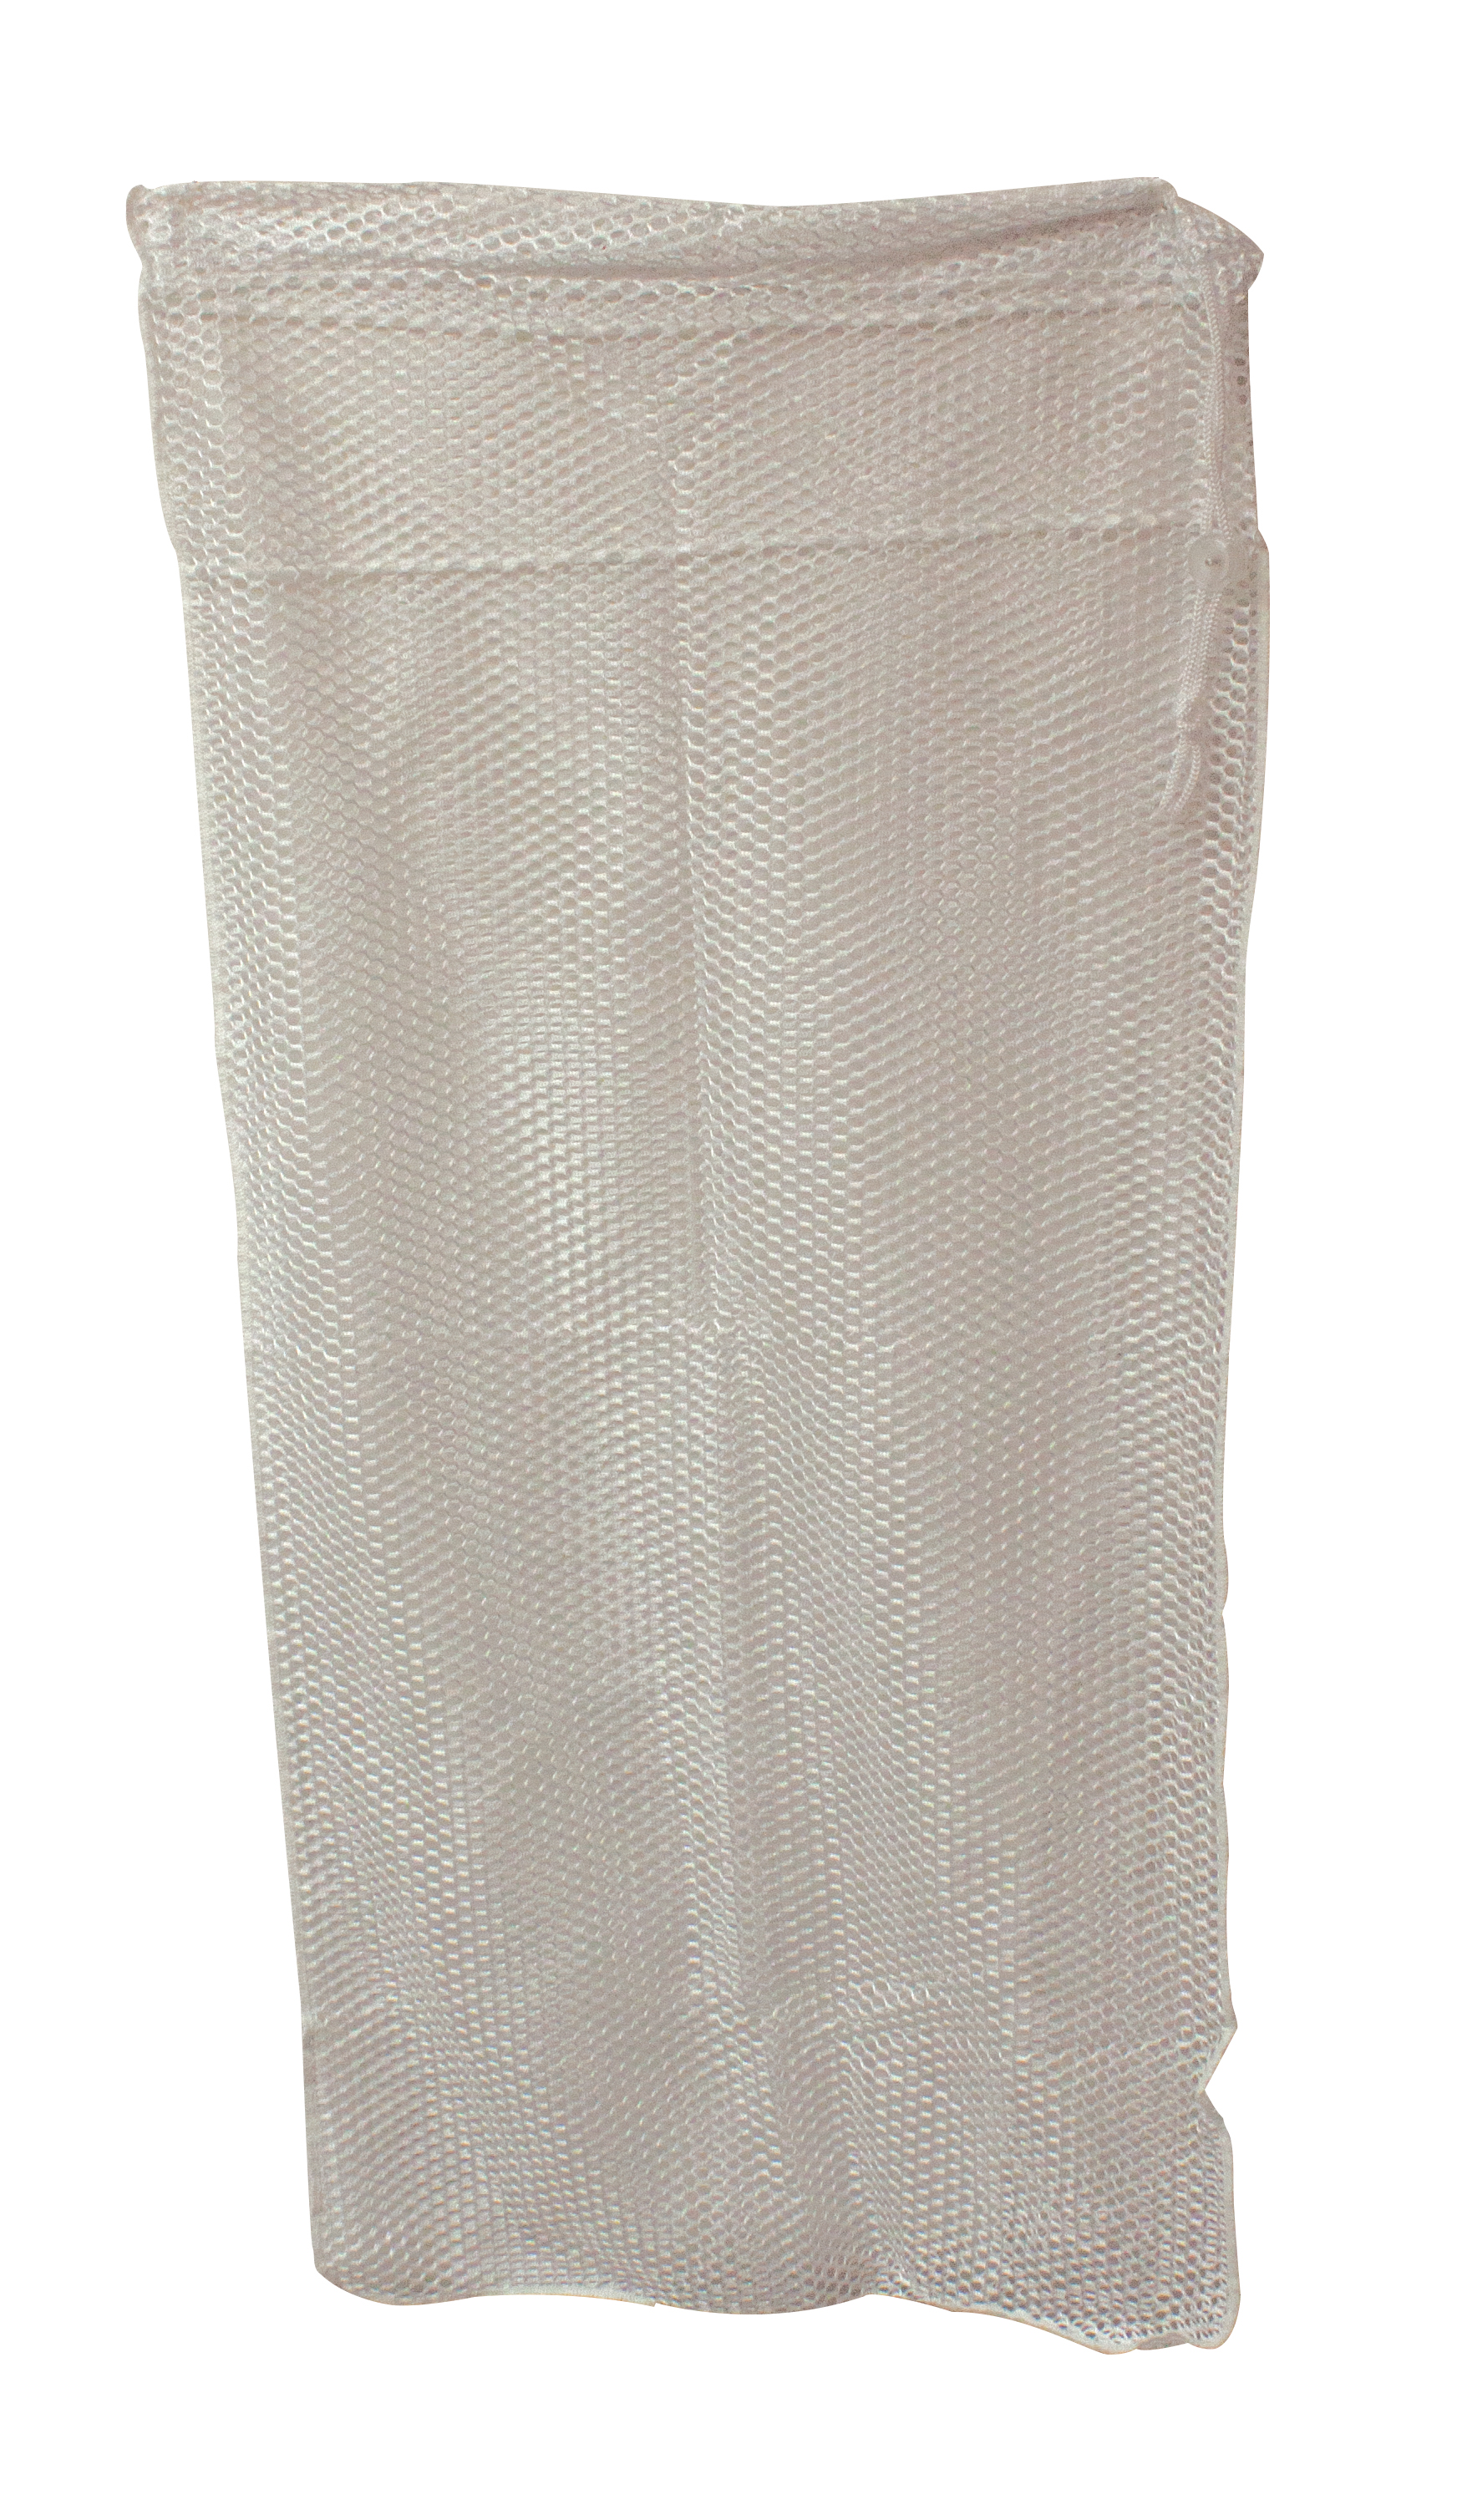 Impact Products CH015 mesh white laundering bag